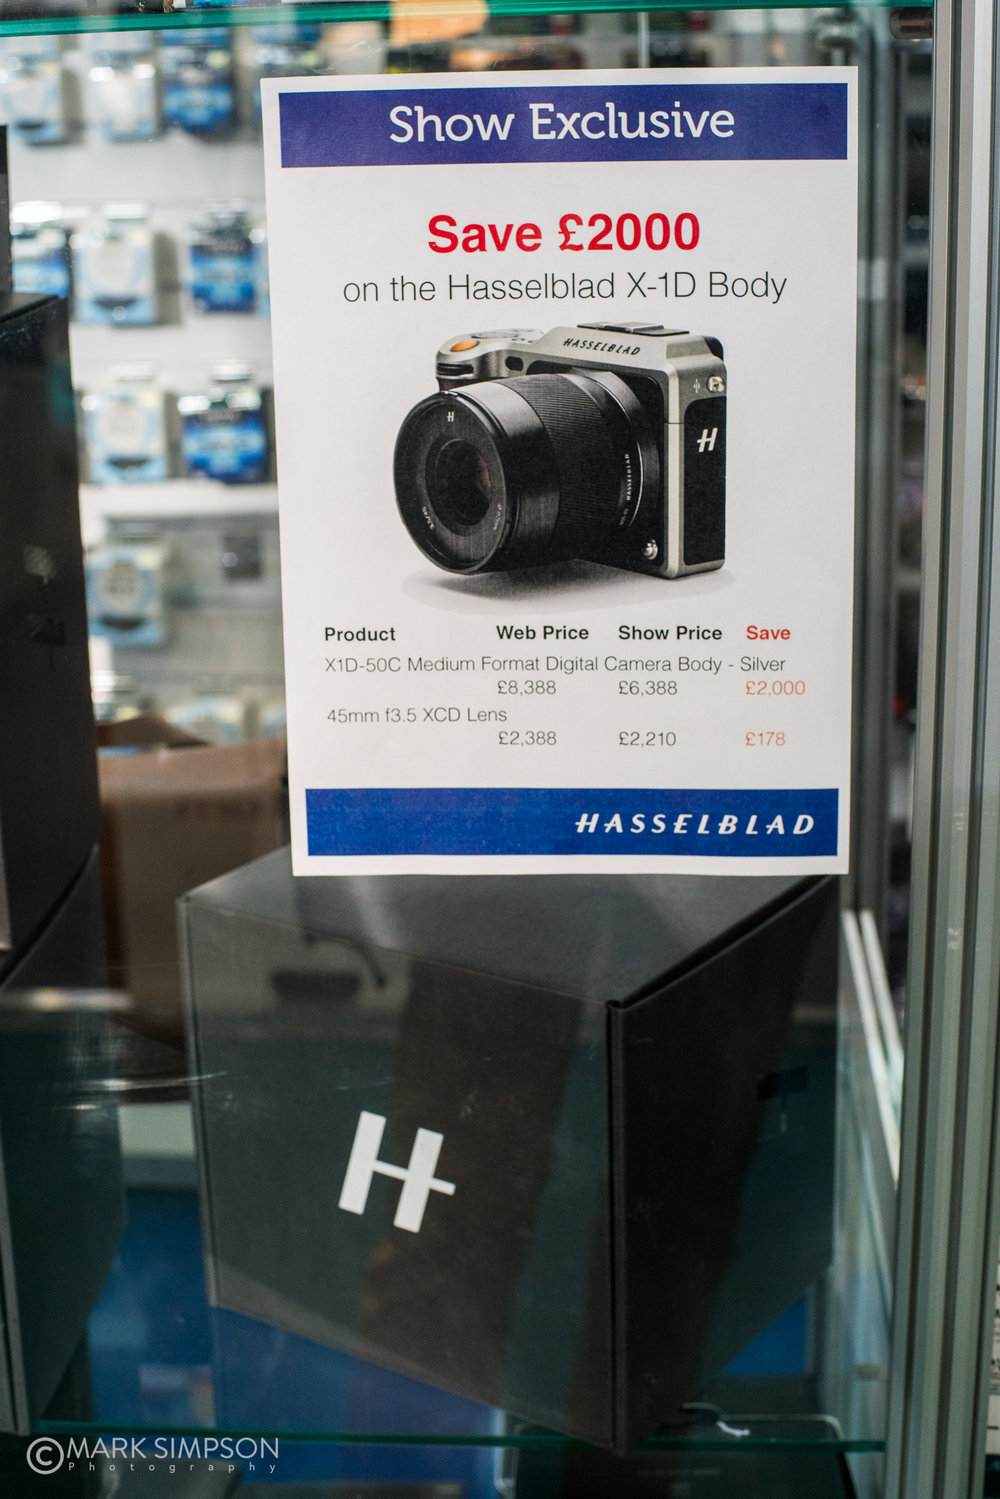 Hard times for Hasselblad? (Sony A7R II, Carl Zeiss Planar T* 50mm f/1.4)